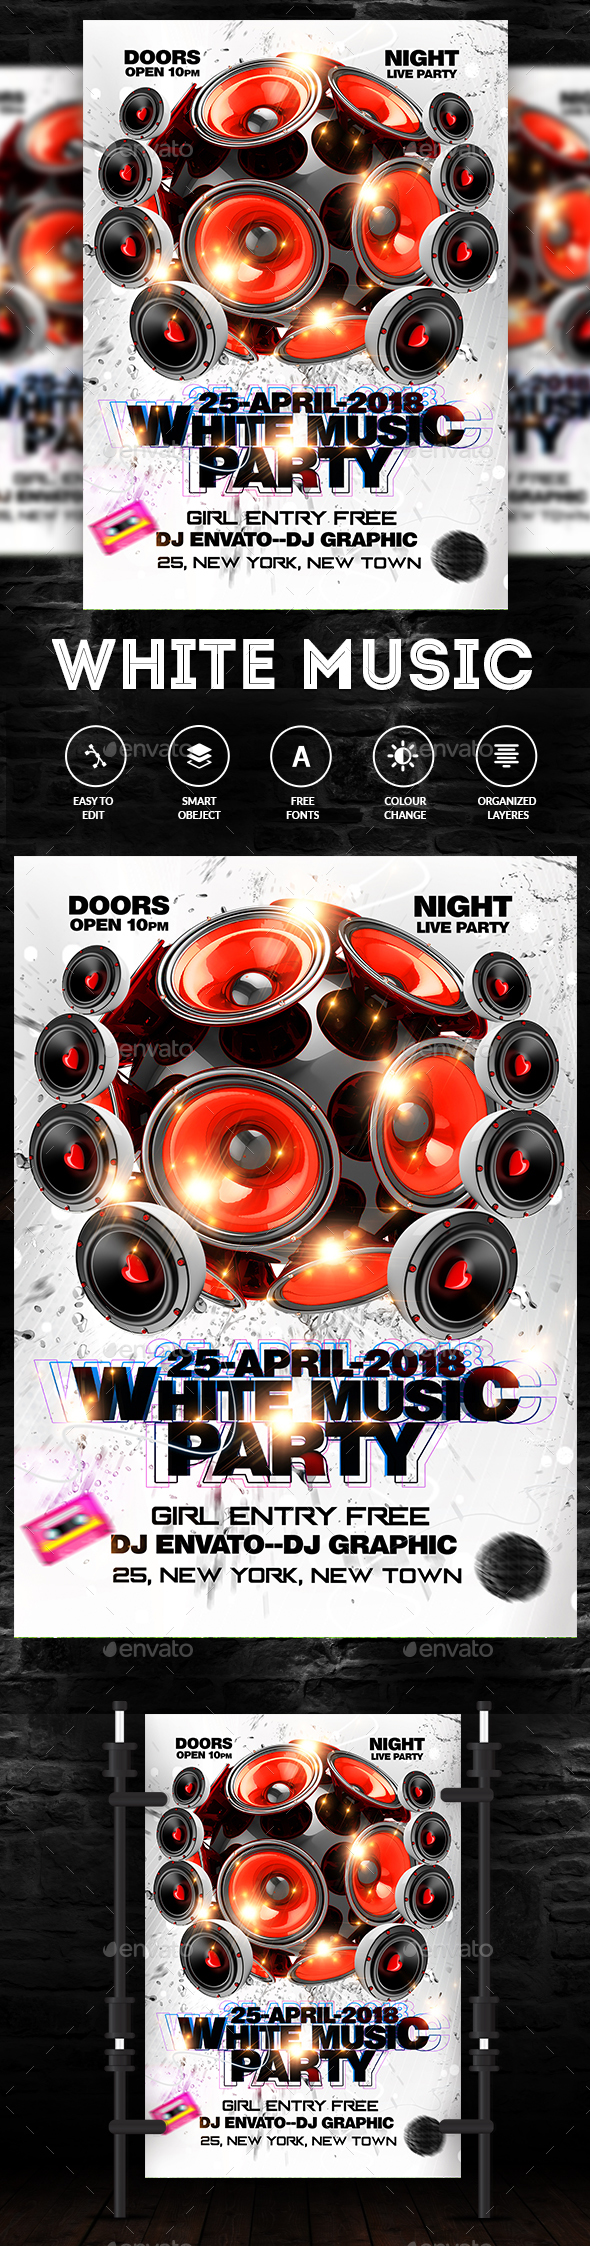 White Music Flyer - Clubs & Parties Events